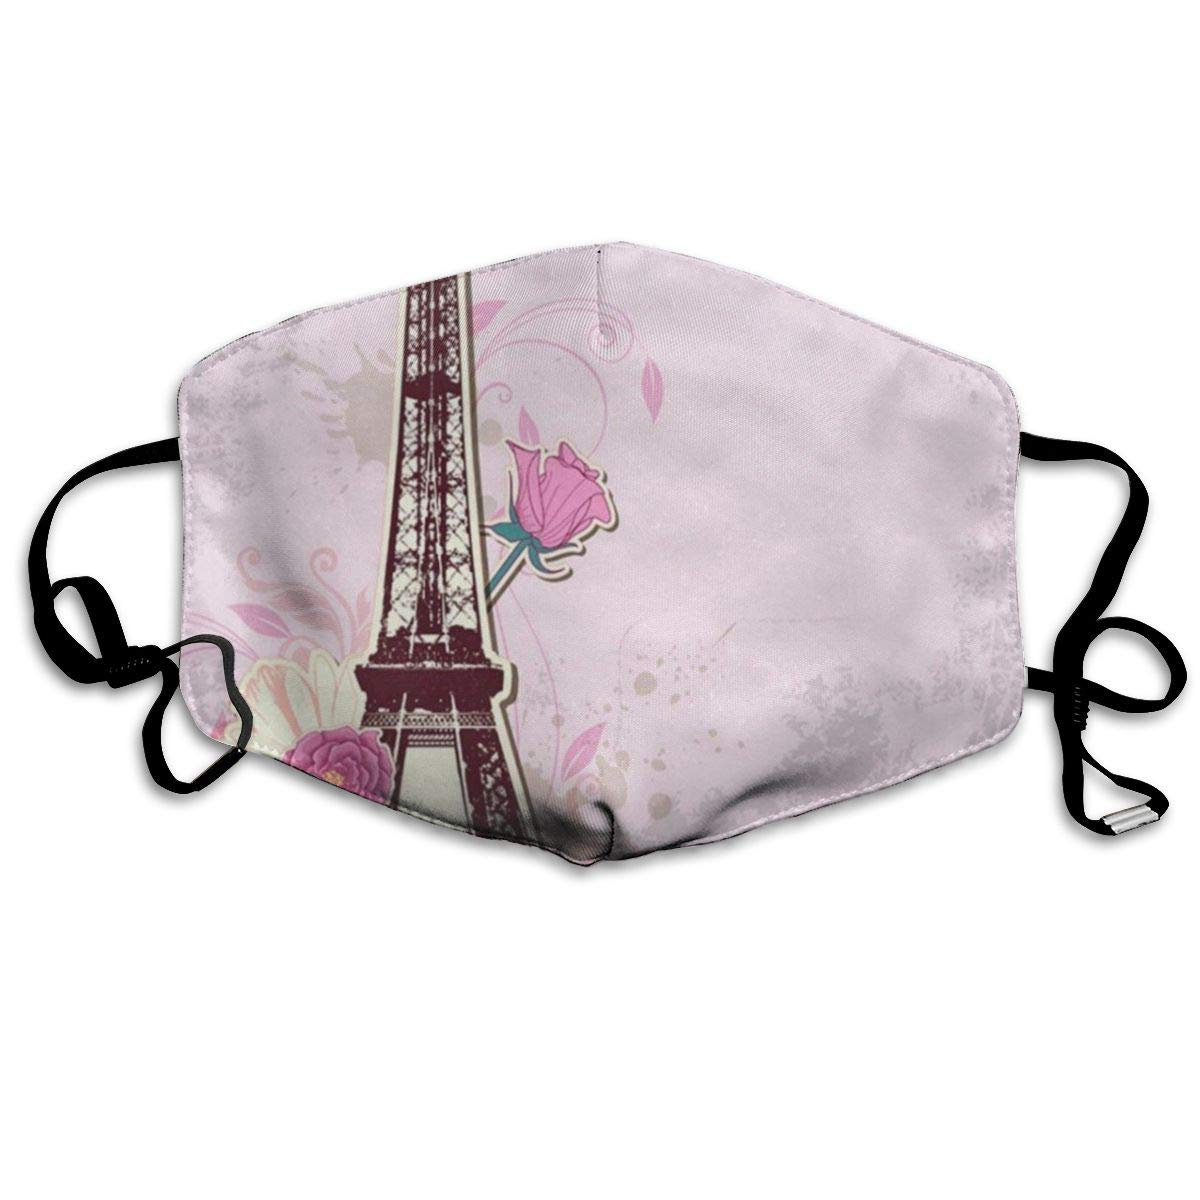 Love Paris Great Dust Mouth Mask Reusable Anti-Dust Face Mask Adjustable Earloop Skin Protection